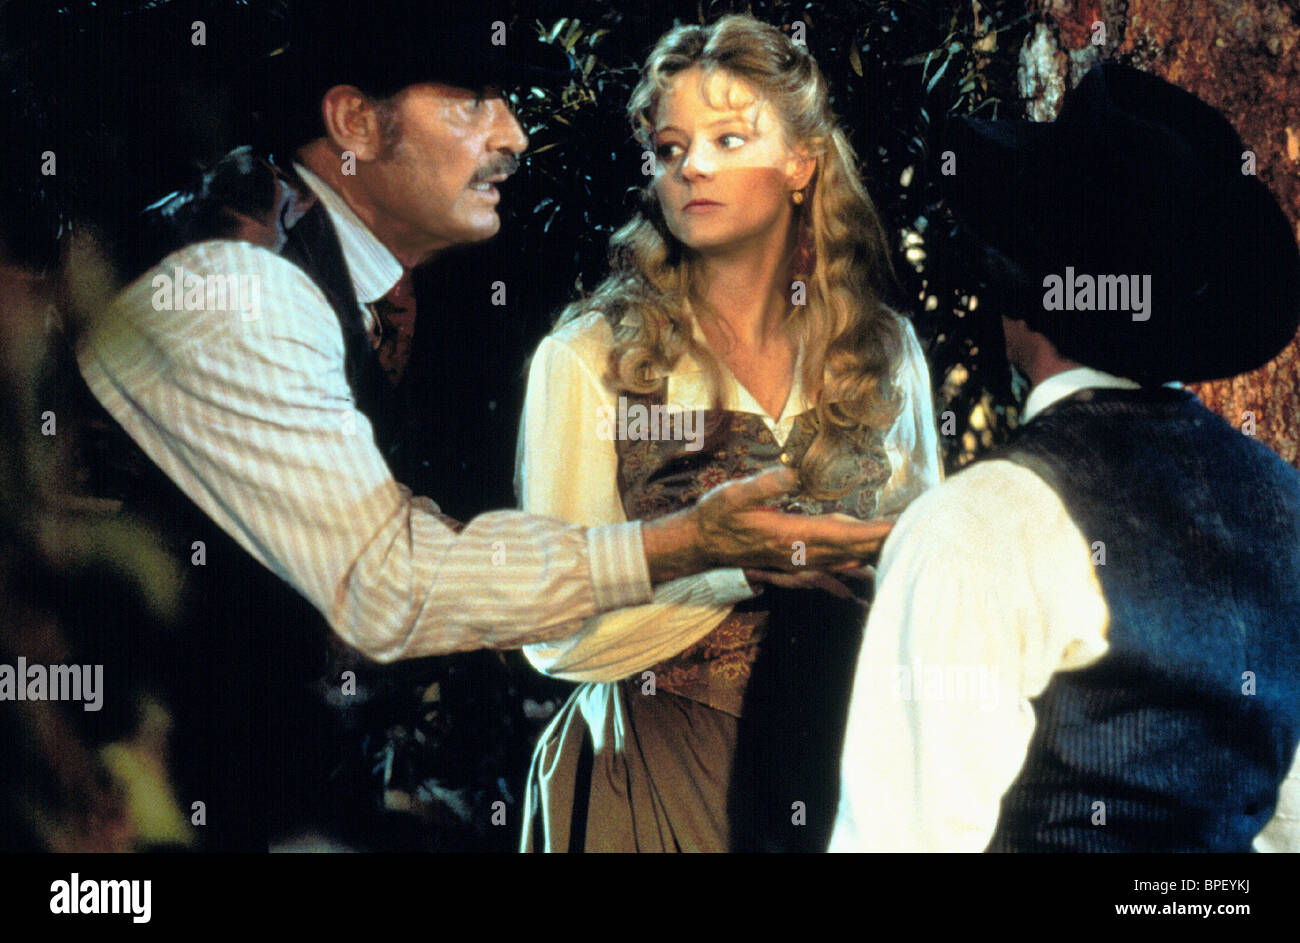 James Garner Jodie Foster Maverick 1994 Stock Photo Alamy